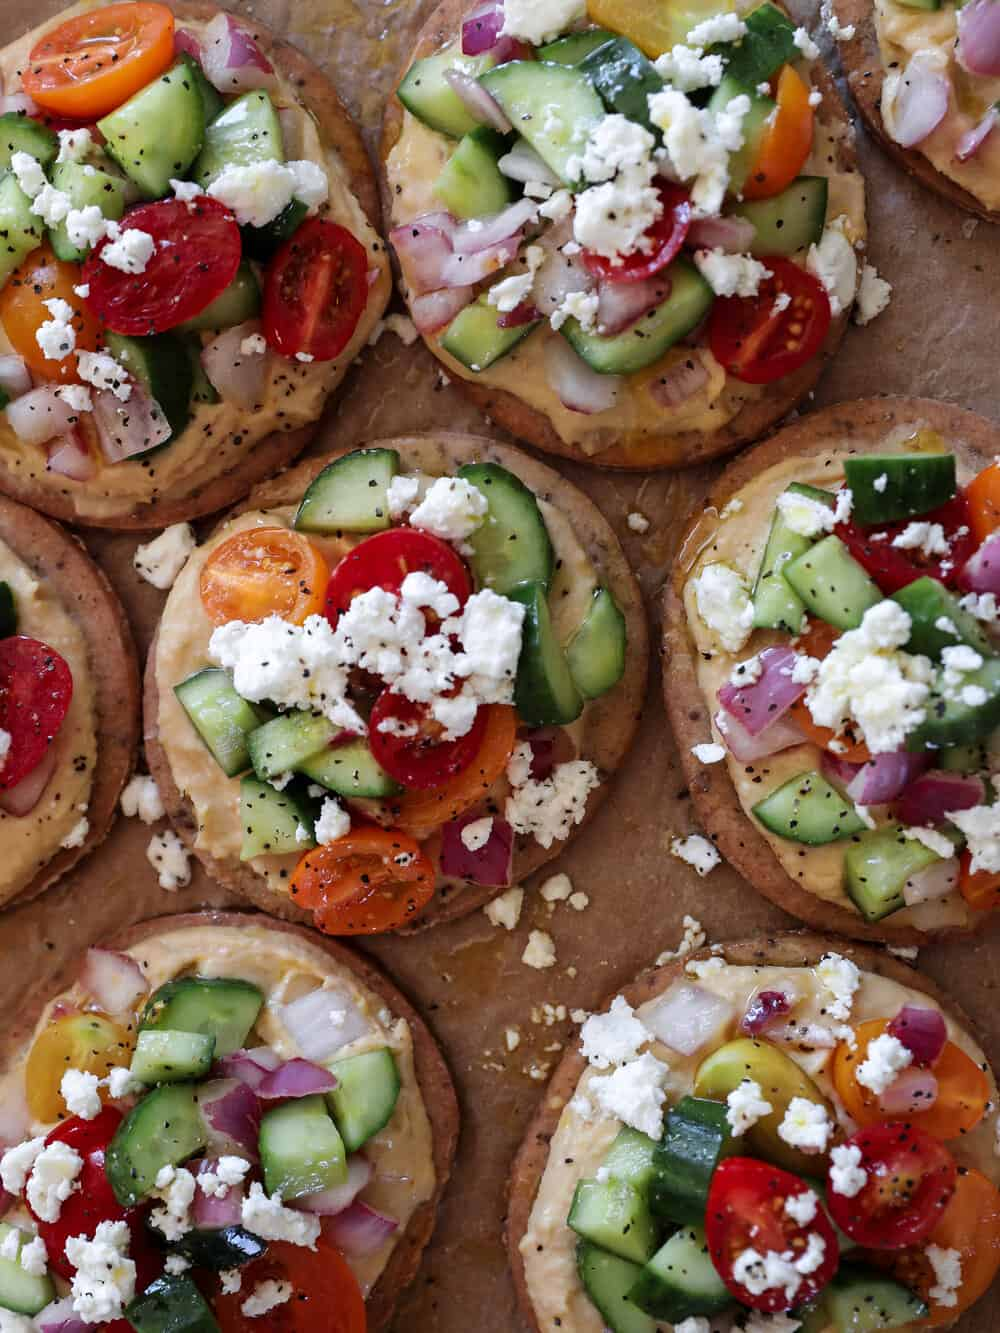 GREEK SALAD FLATBREADS - INGREDIENTS6 gluten free flatbread rounds4 cucumbers, diced1 cup tomatoes, halved1/2 cup red onion, chopped3 tablespoons olive oil3 tablespoons champagne vinegar (or red wine vinegar)Salt and pepper to tasteFeta cheese to crumble on topHummus, to spread on the rounds